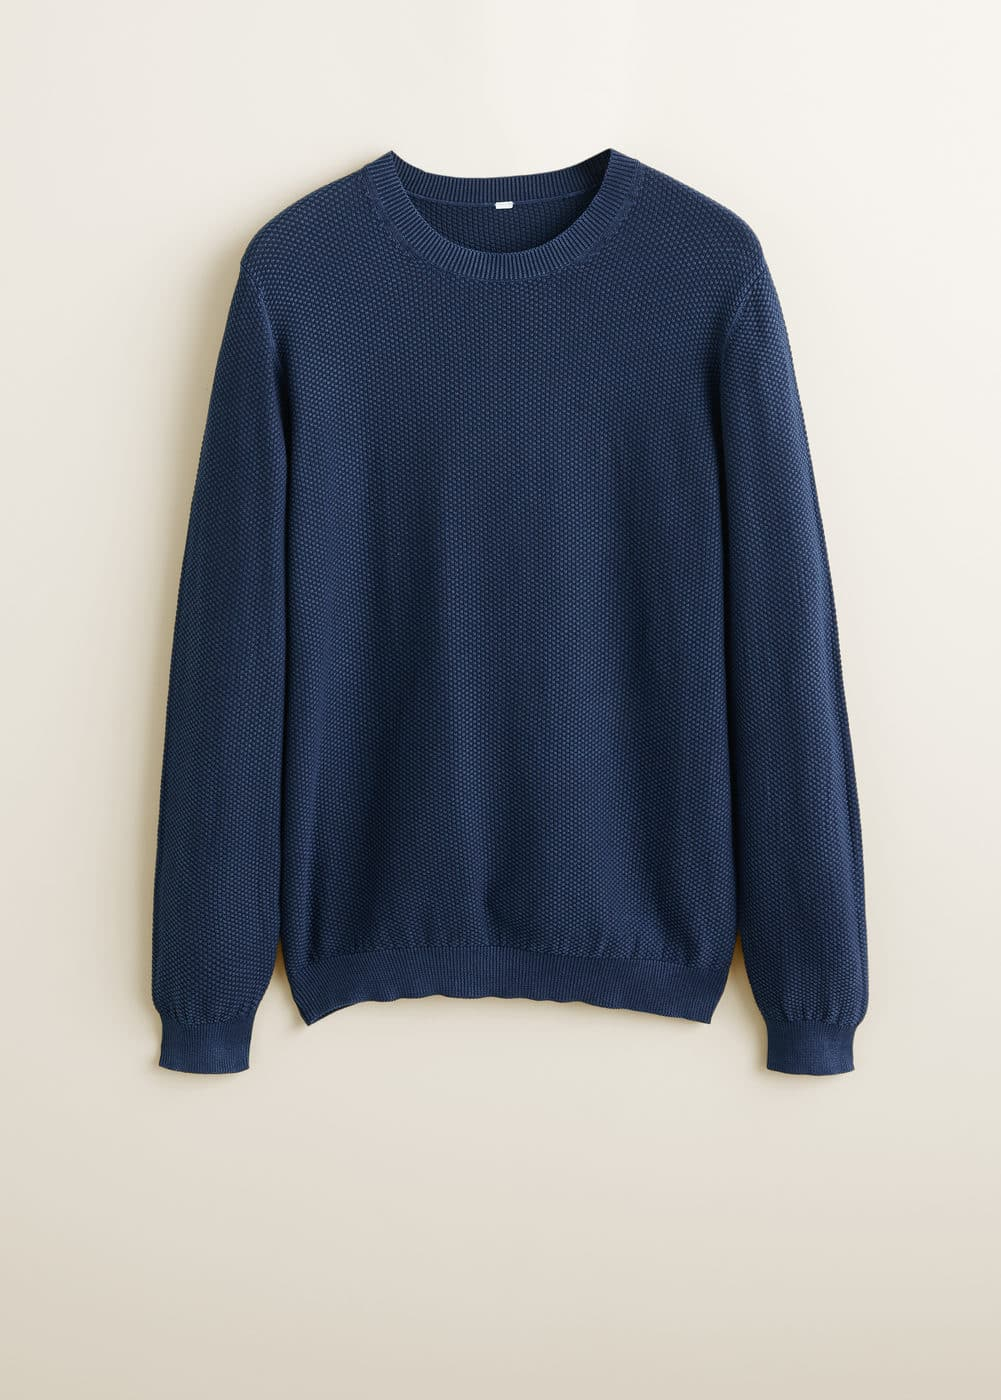 Mango - Structured cotton sweater - 6